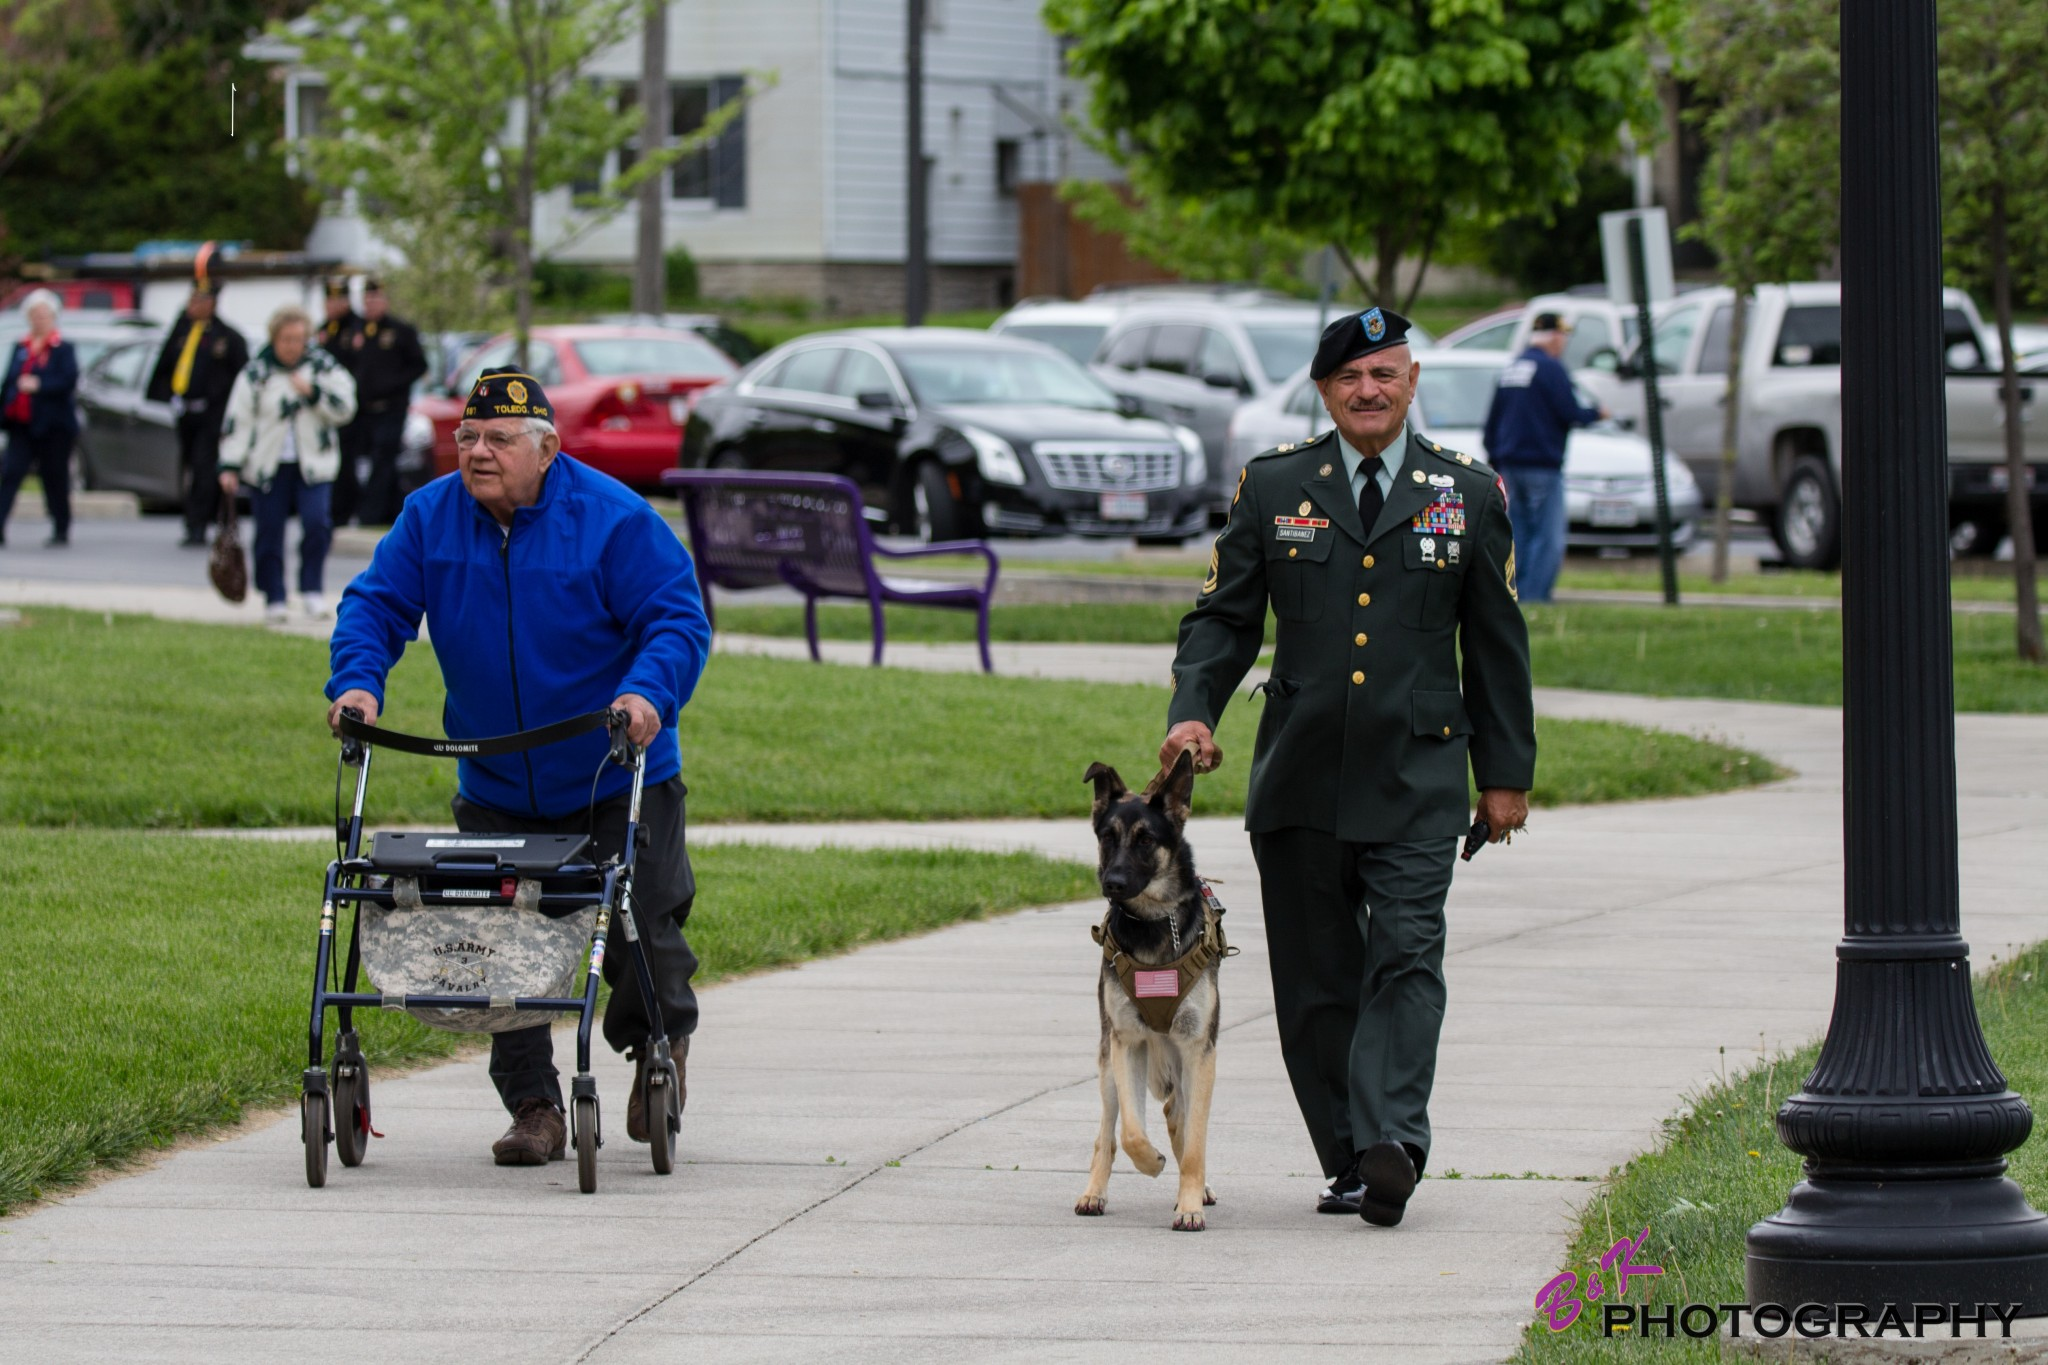 "Jack Pietras, from American Legion Post 587, (left), walks with former Waite student Army Sgt. Rudy Santibanez, and his service dog.  (Photo courtesy of B &amp; K Photo/<a href=""http://www.facebook.com/BKphotovideo"">www.facebook.com/BKphotovideo</a>)"